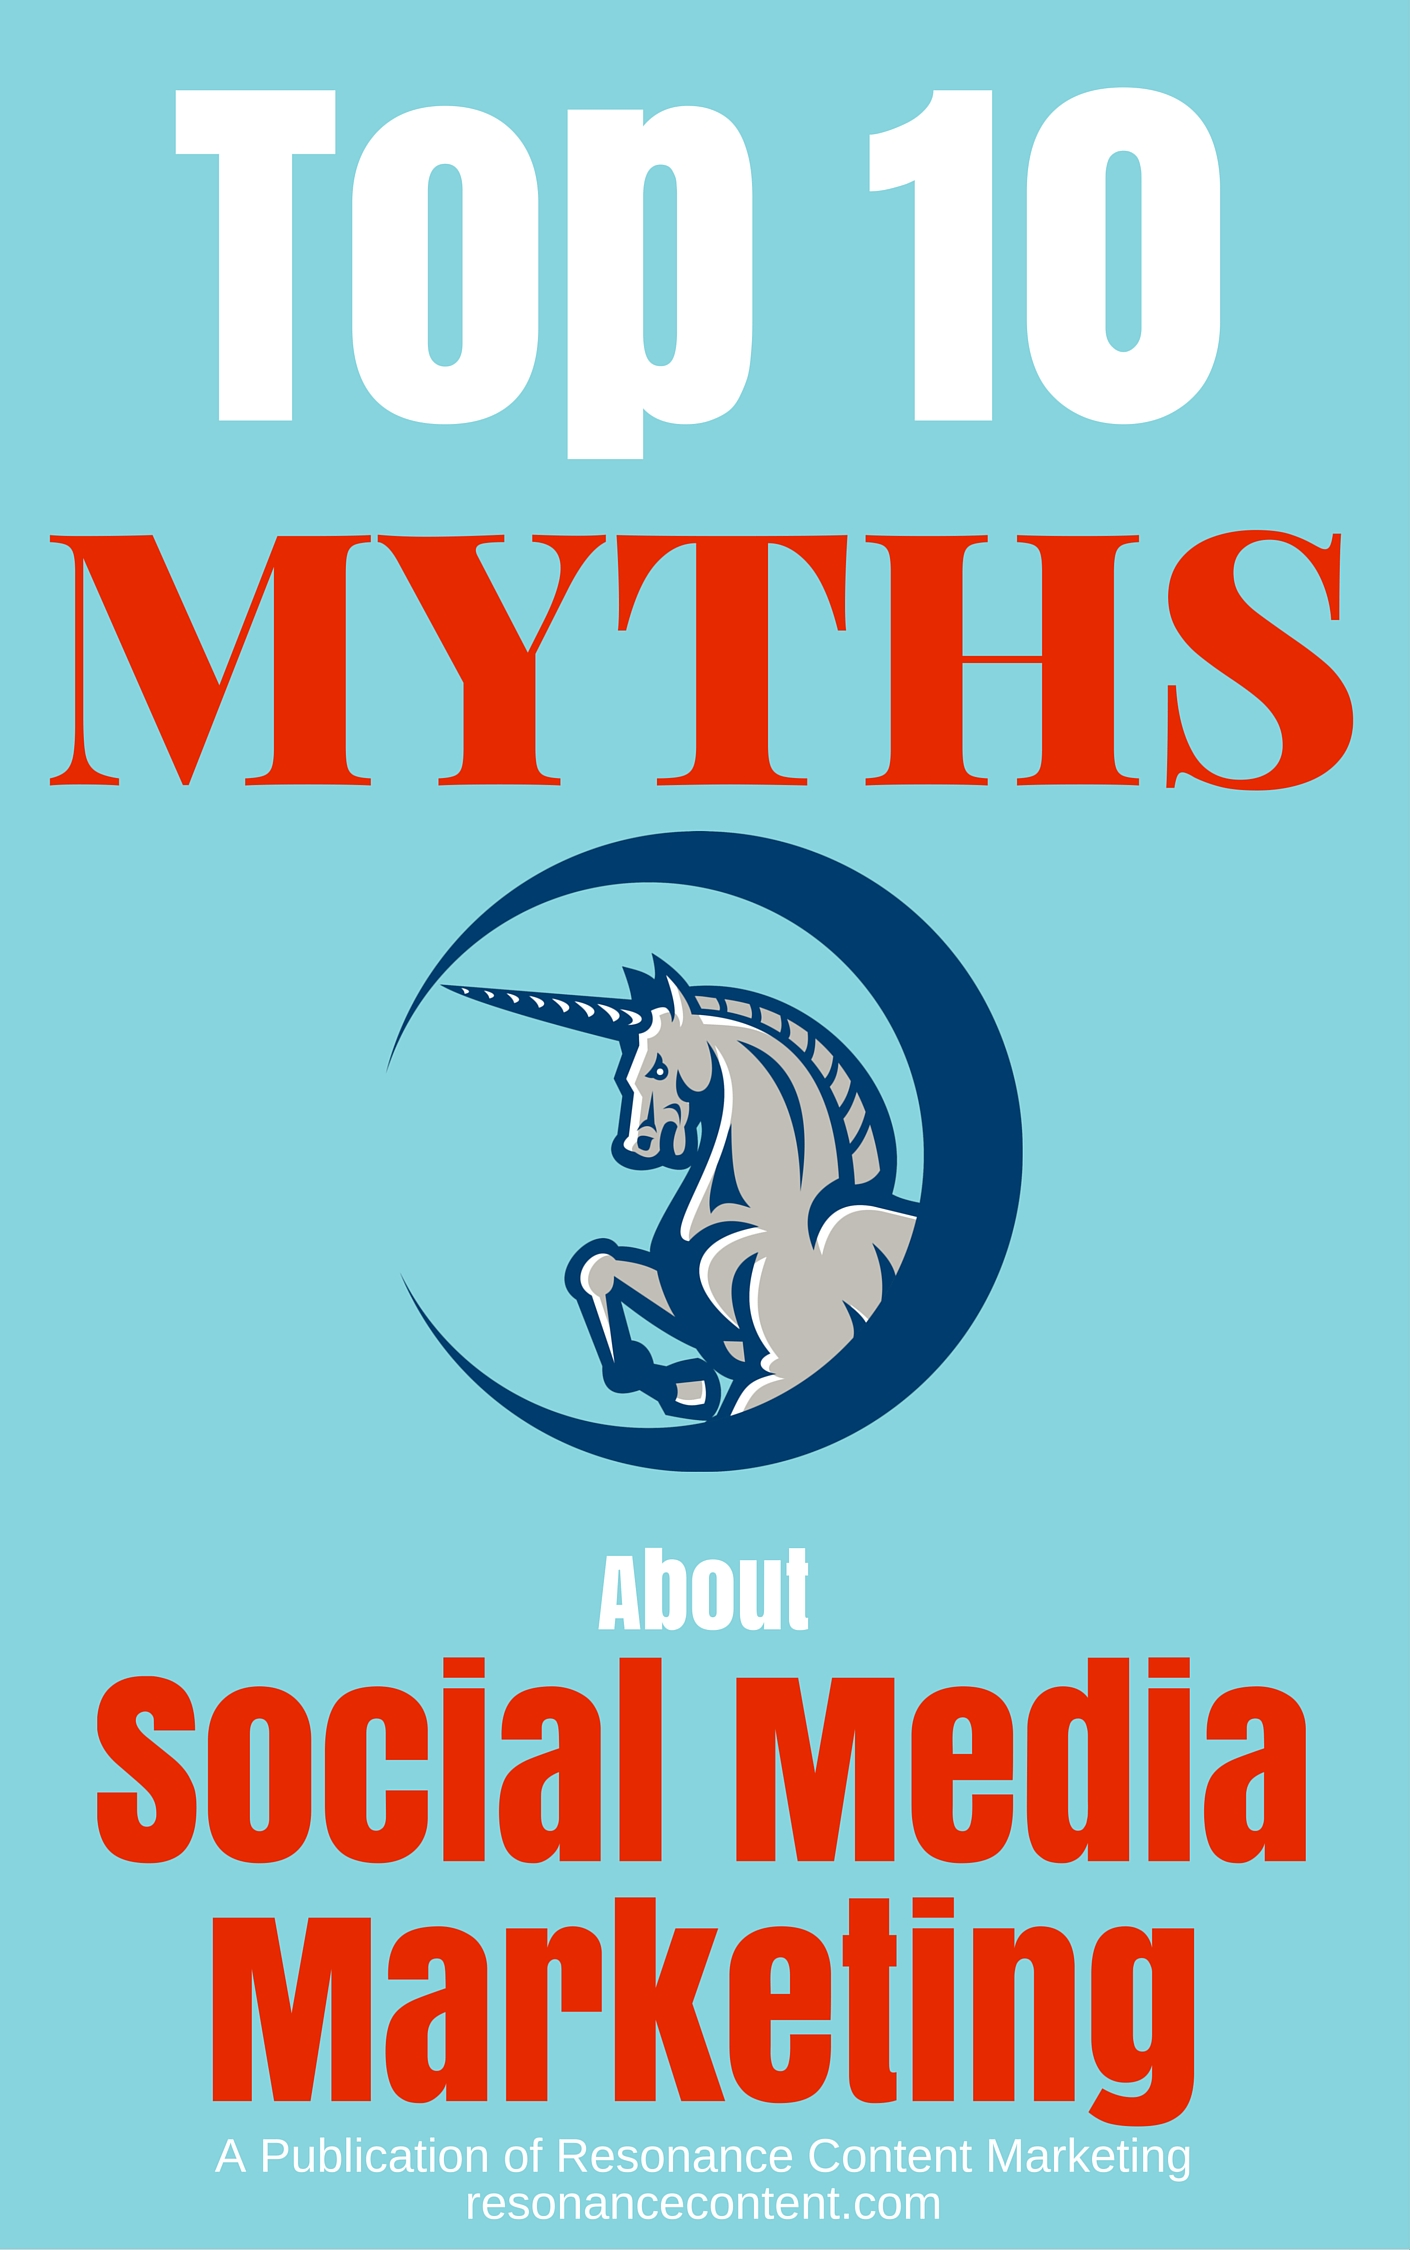 Top 10 Myths About Social Media Marketing